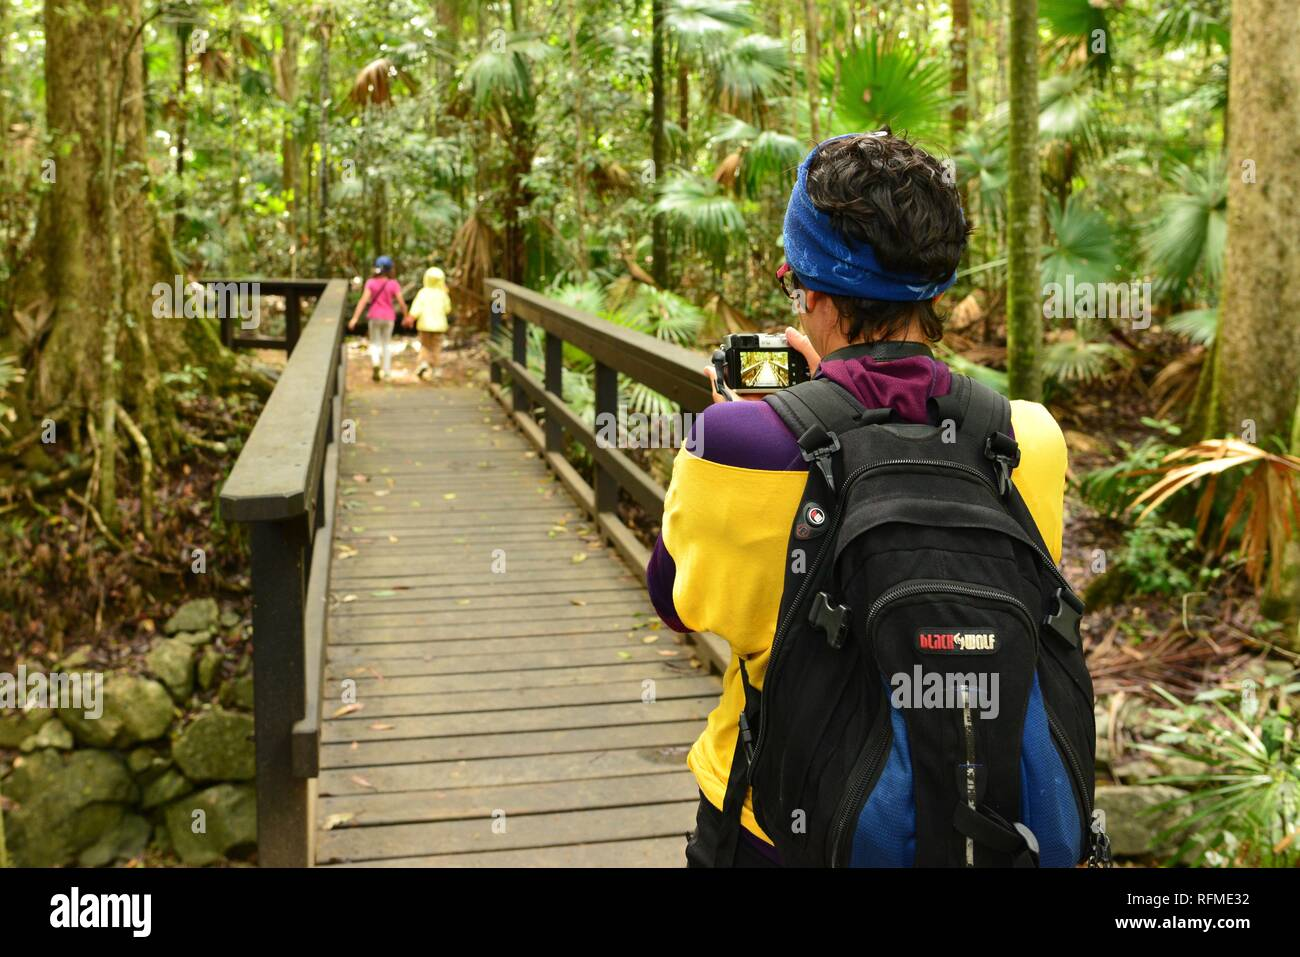 A mother uses a camera to take a photo of her children walking through a rainforest, Eungella National Park, Queensland, Australia Stock Photo